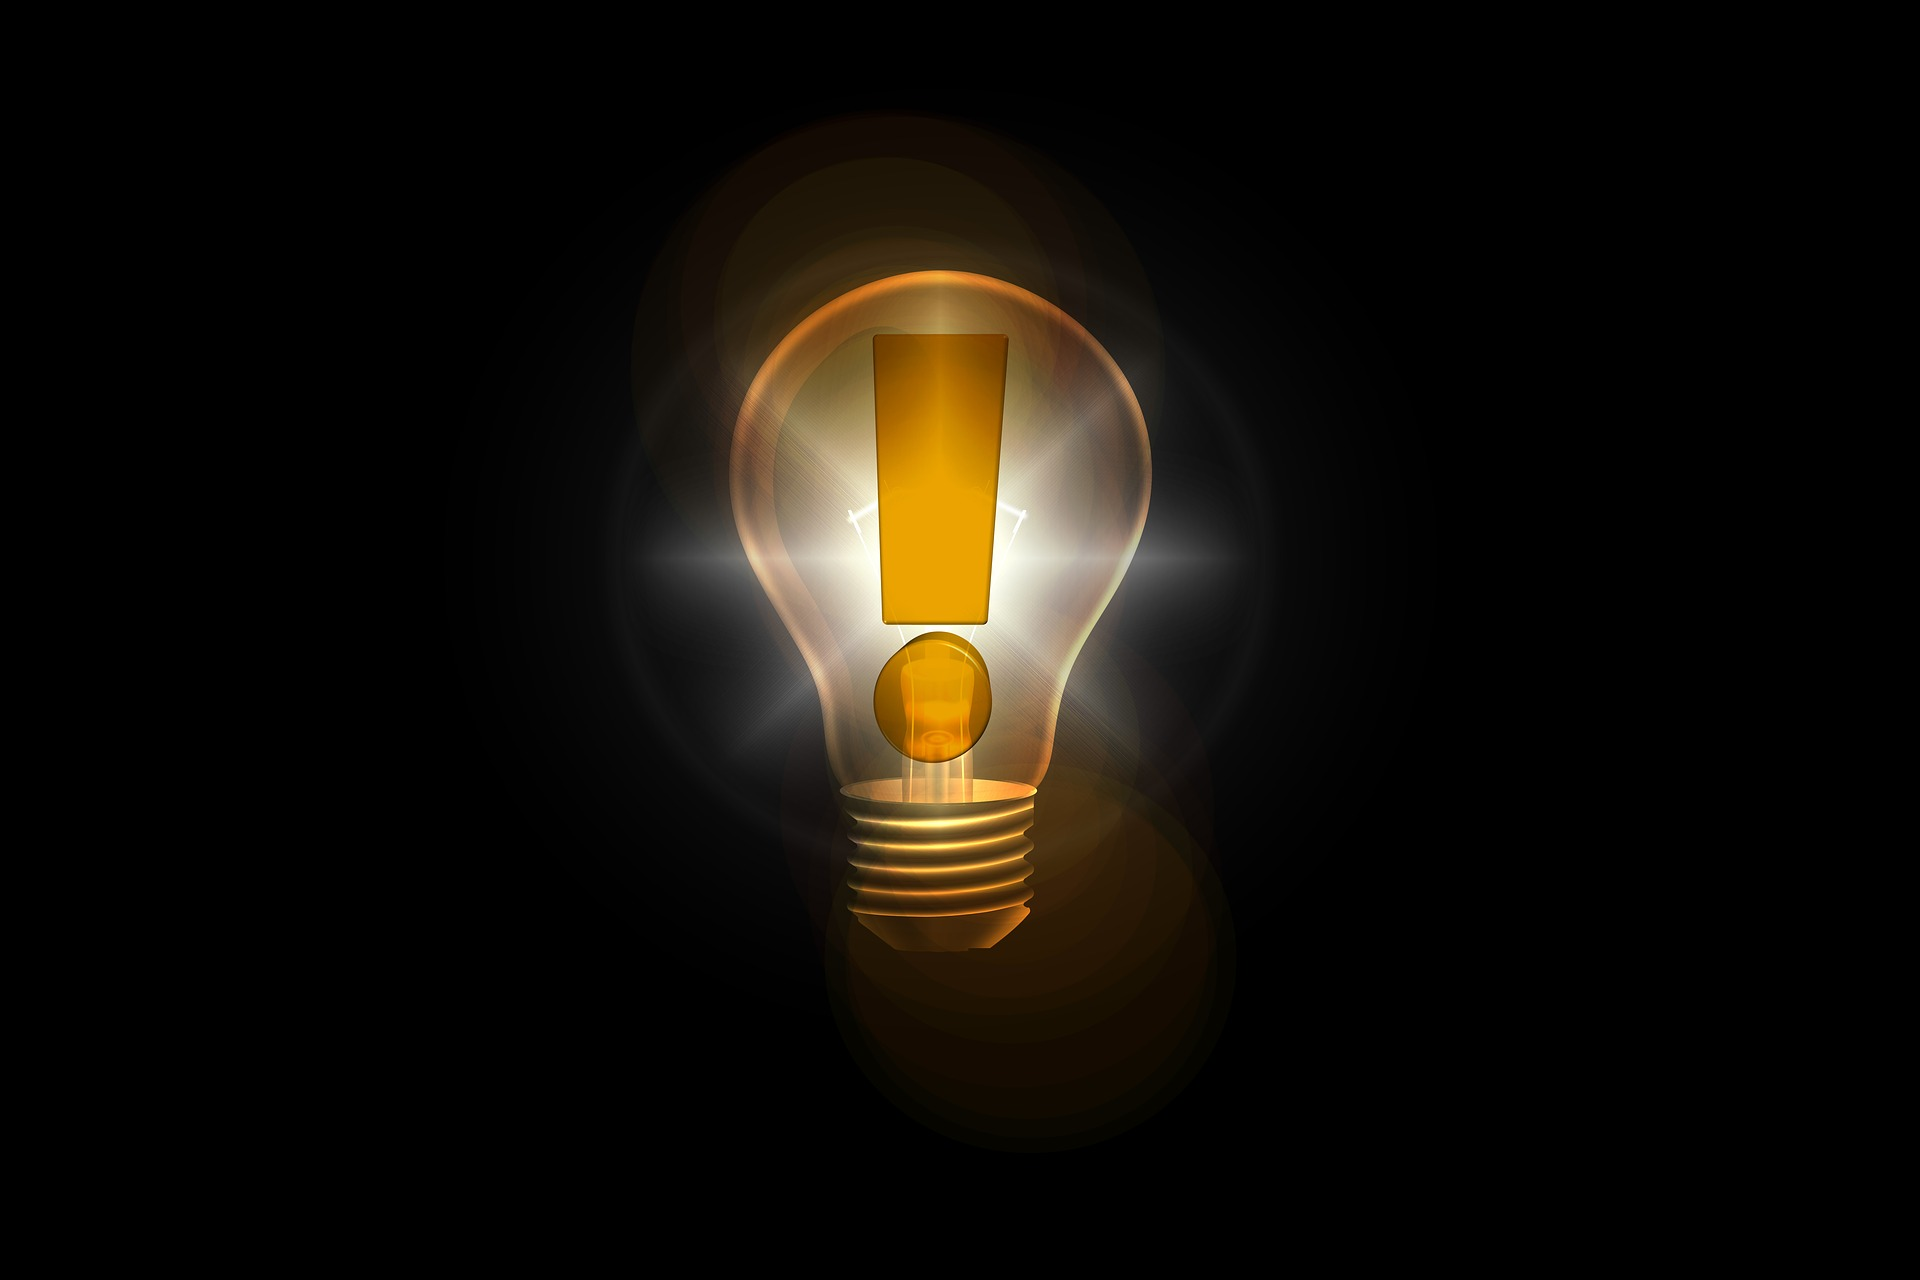 Let's shed some light on our patent research enigma, shall we?  Image by  Gerd Altmann  from  Pixabay .